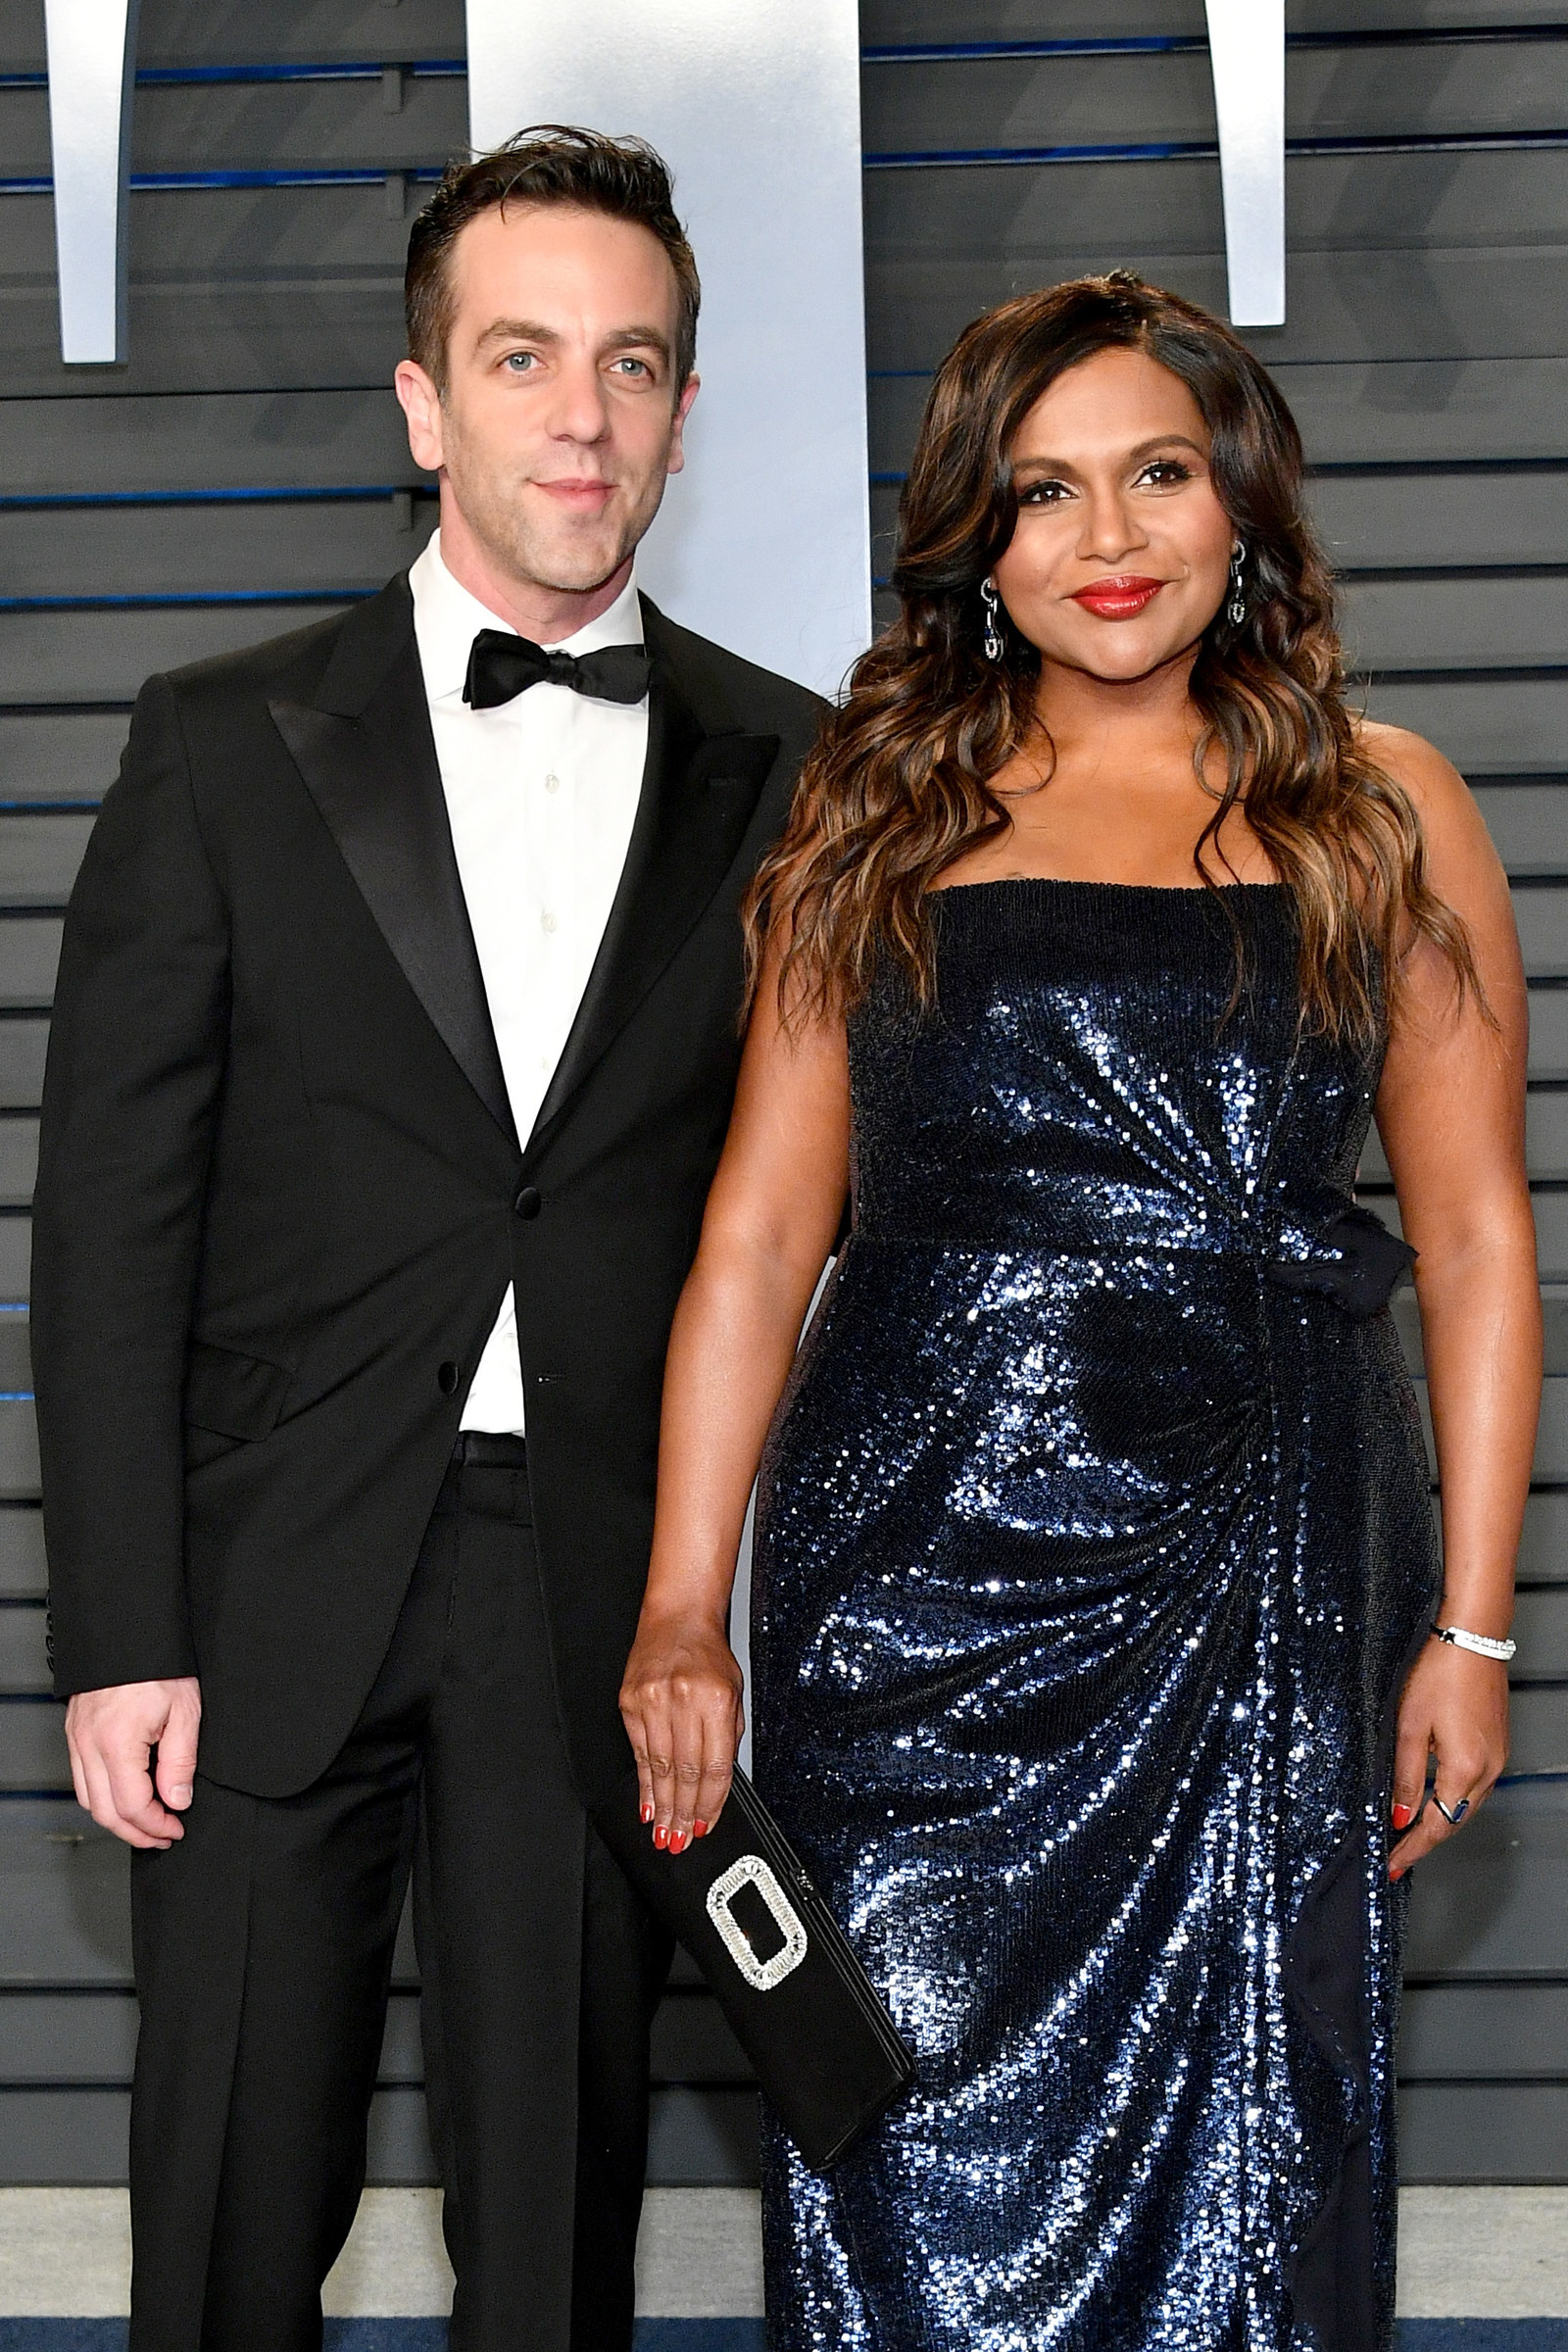 Last night, soup snakes Mindy Kaling and BJ Novak attended the Vanity Fair Oscars party together and I haven't been able to think about a single thing since... -  In case you don't know why it's a big deal, here is a  fun refresher course .